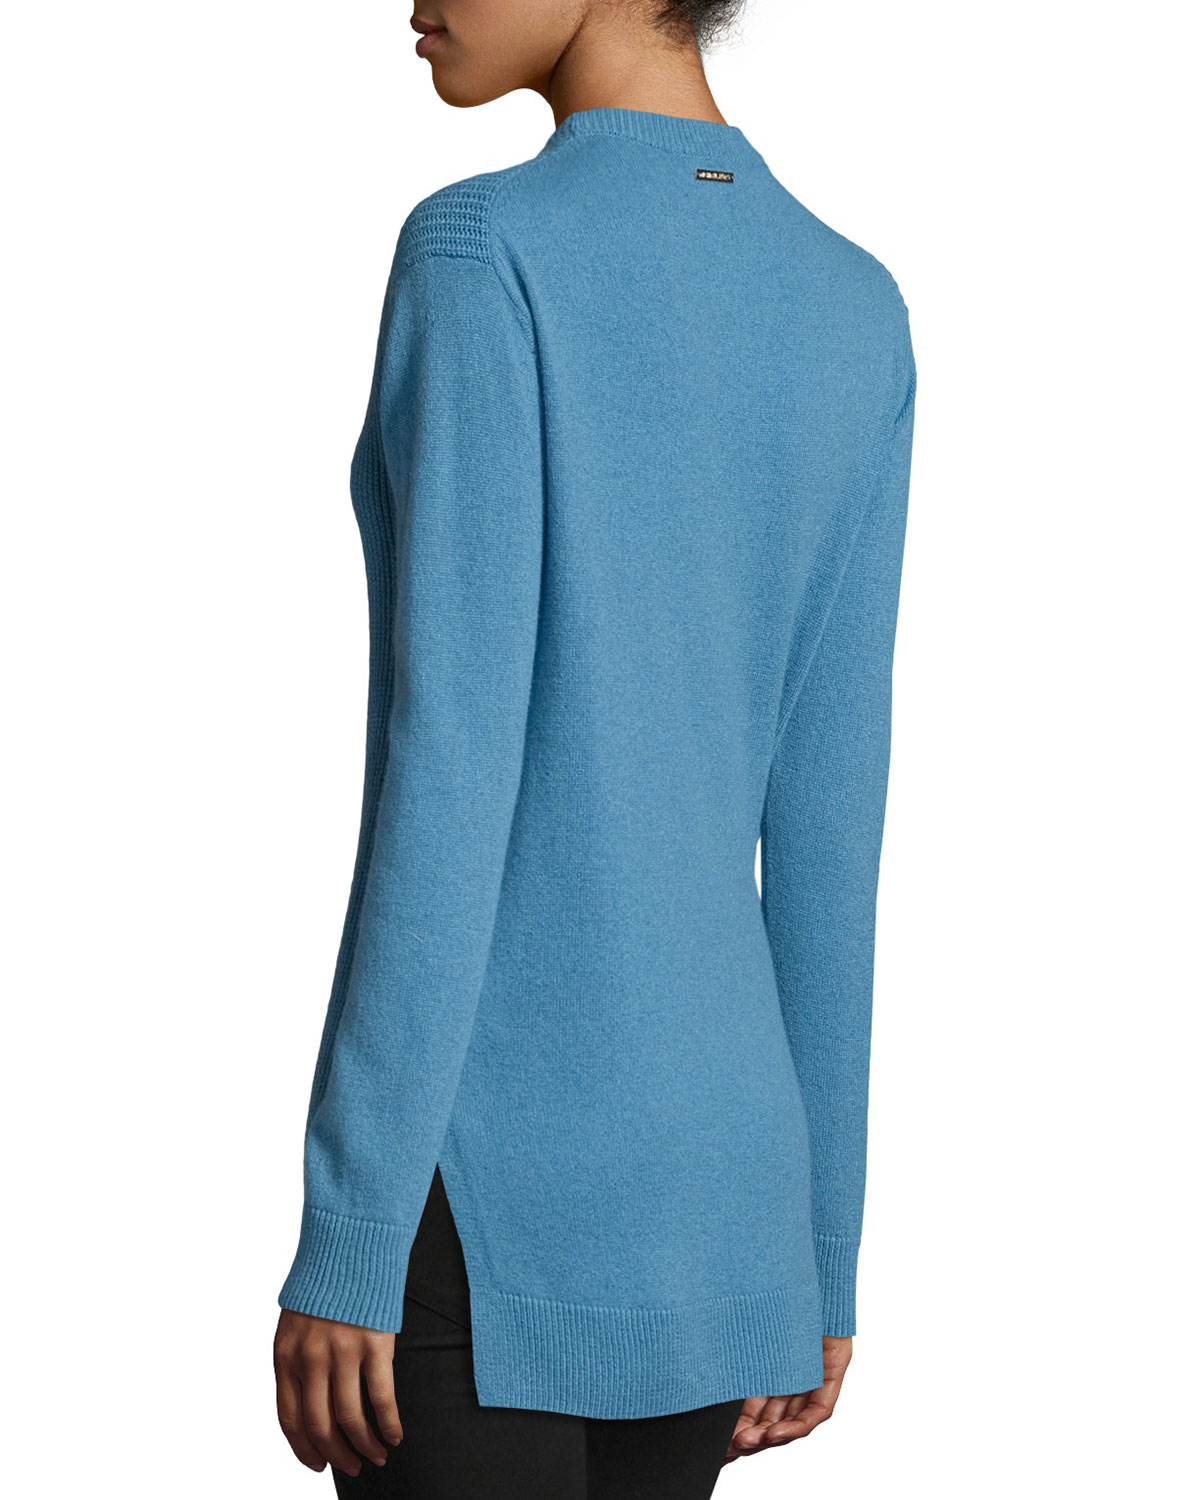 Michael michael kors Long-sleeve Shaker-knit Cashmere Sweater in ...